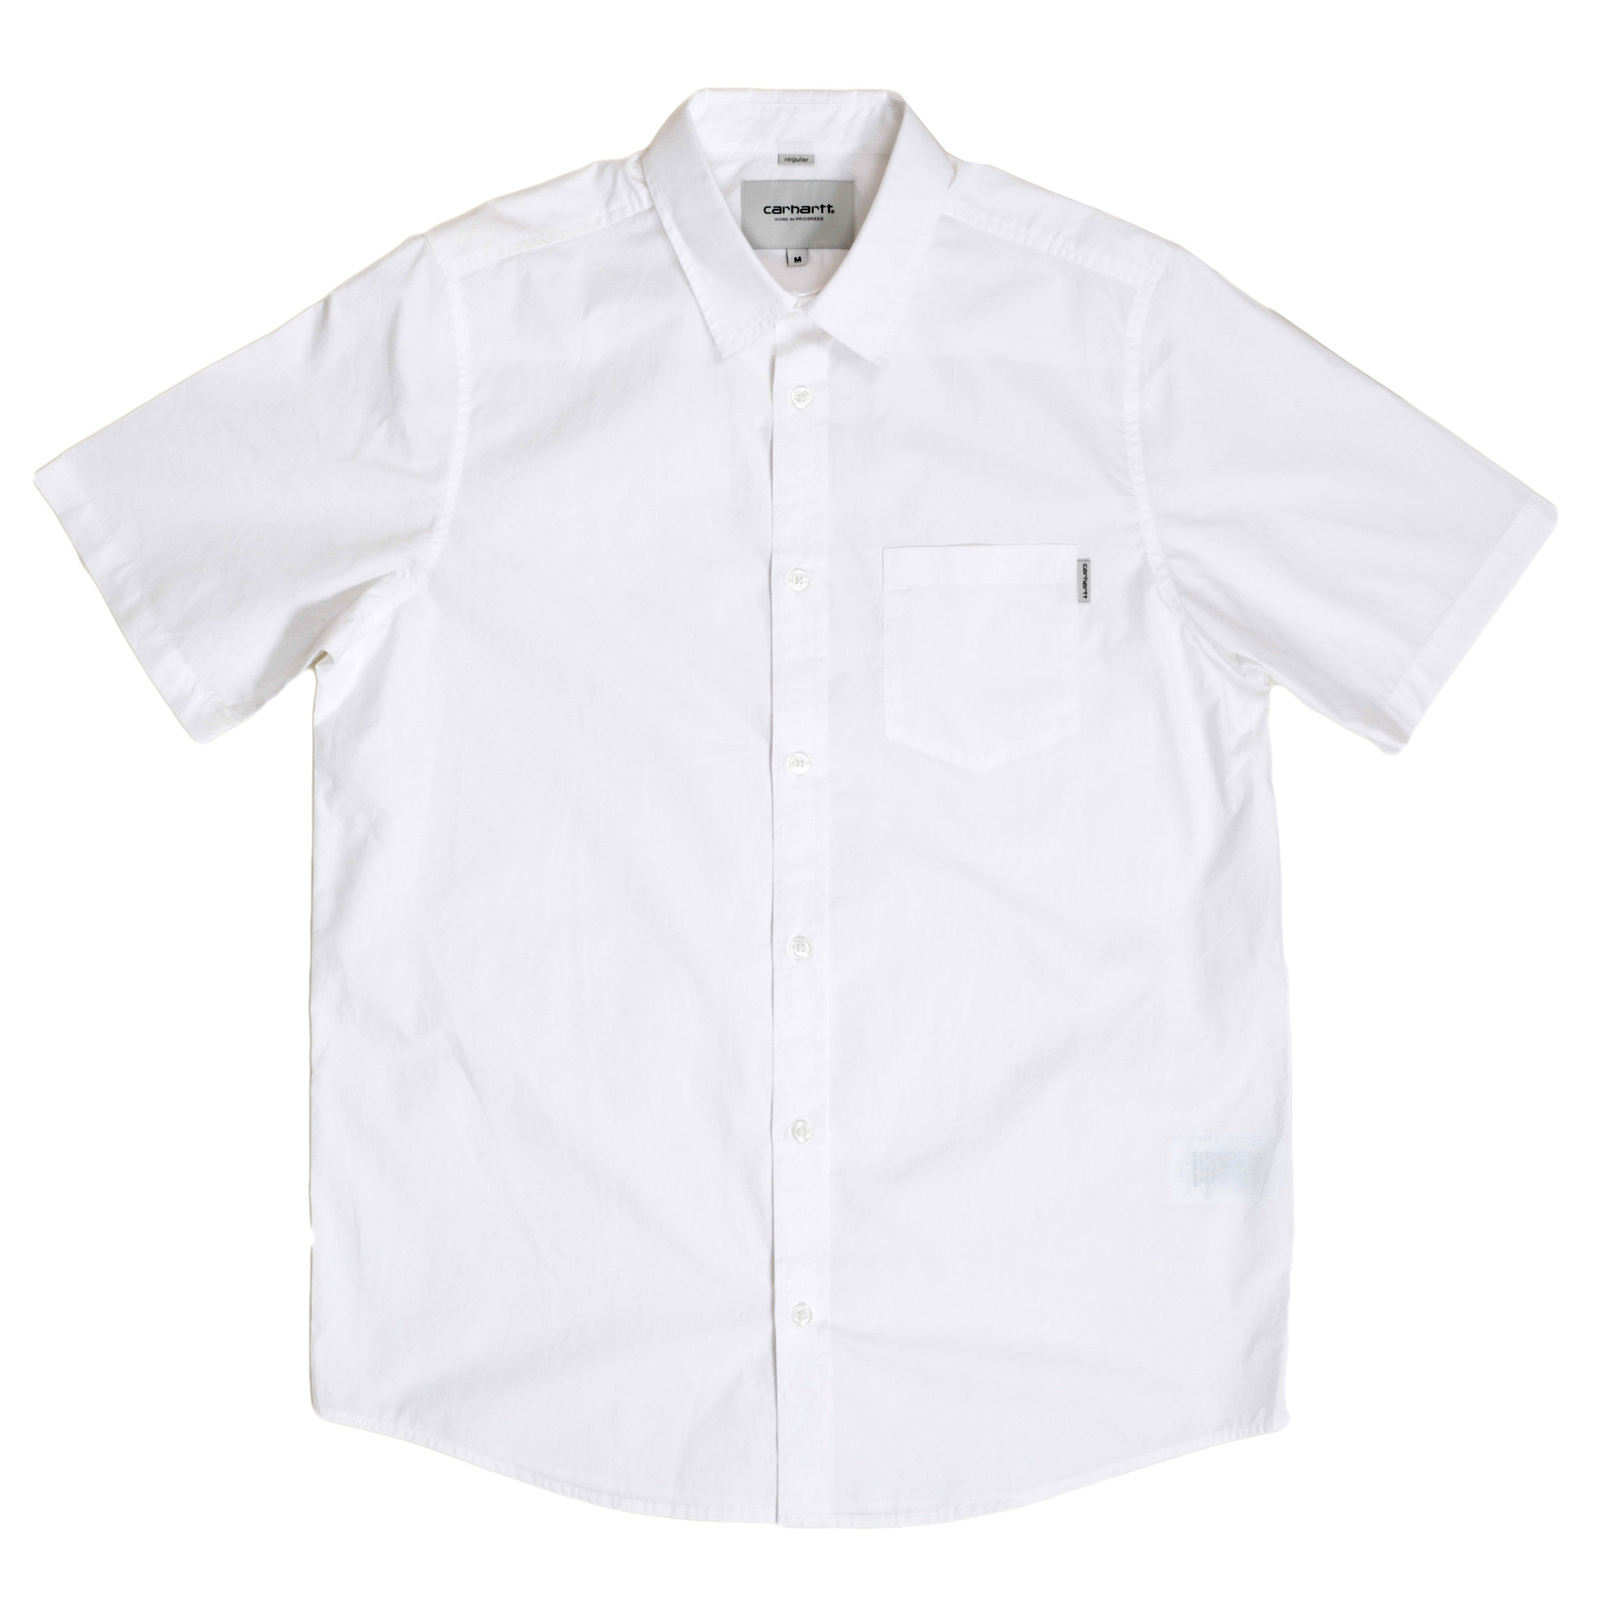 White designer short sleeve shirts for men by carhartt for Short sleeved shirts for men